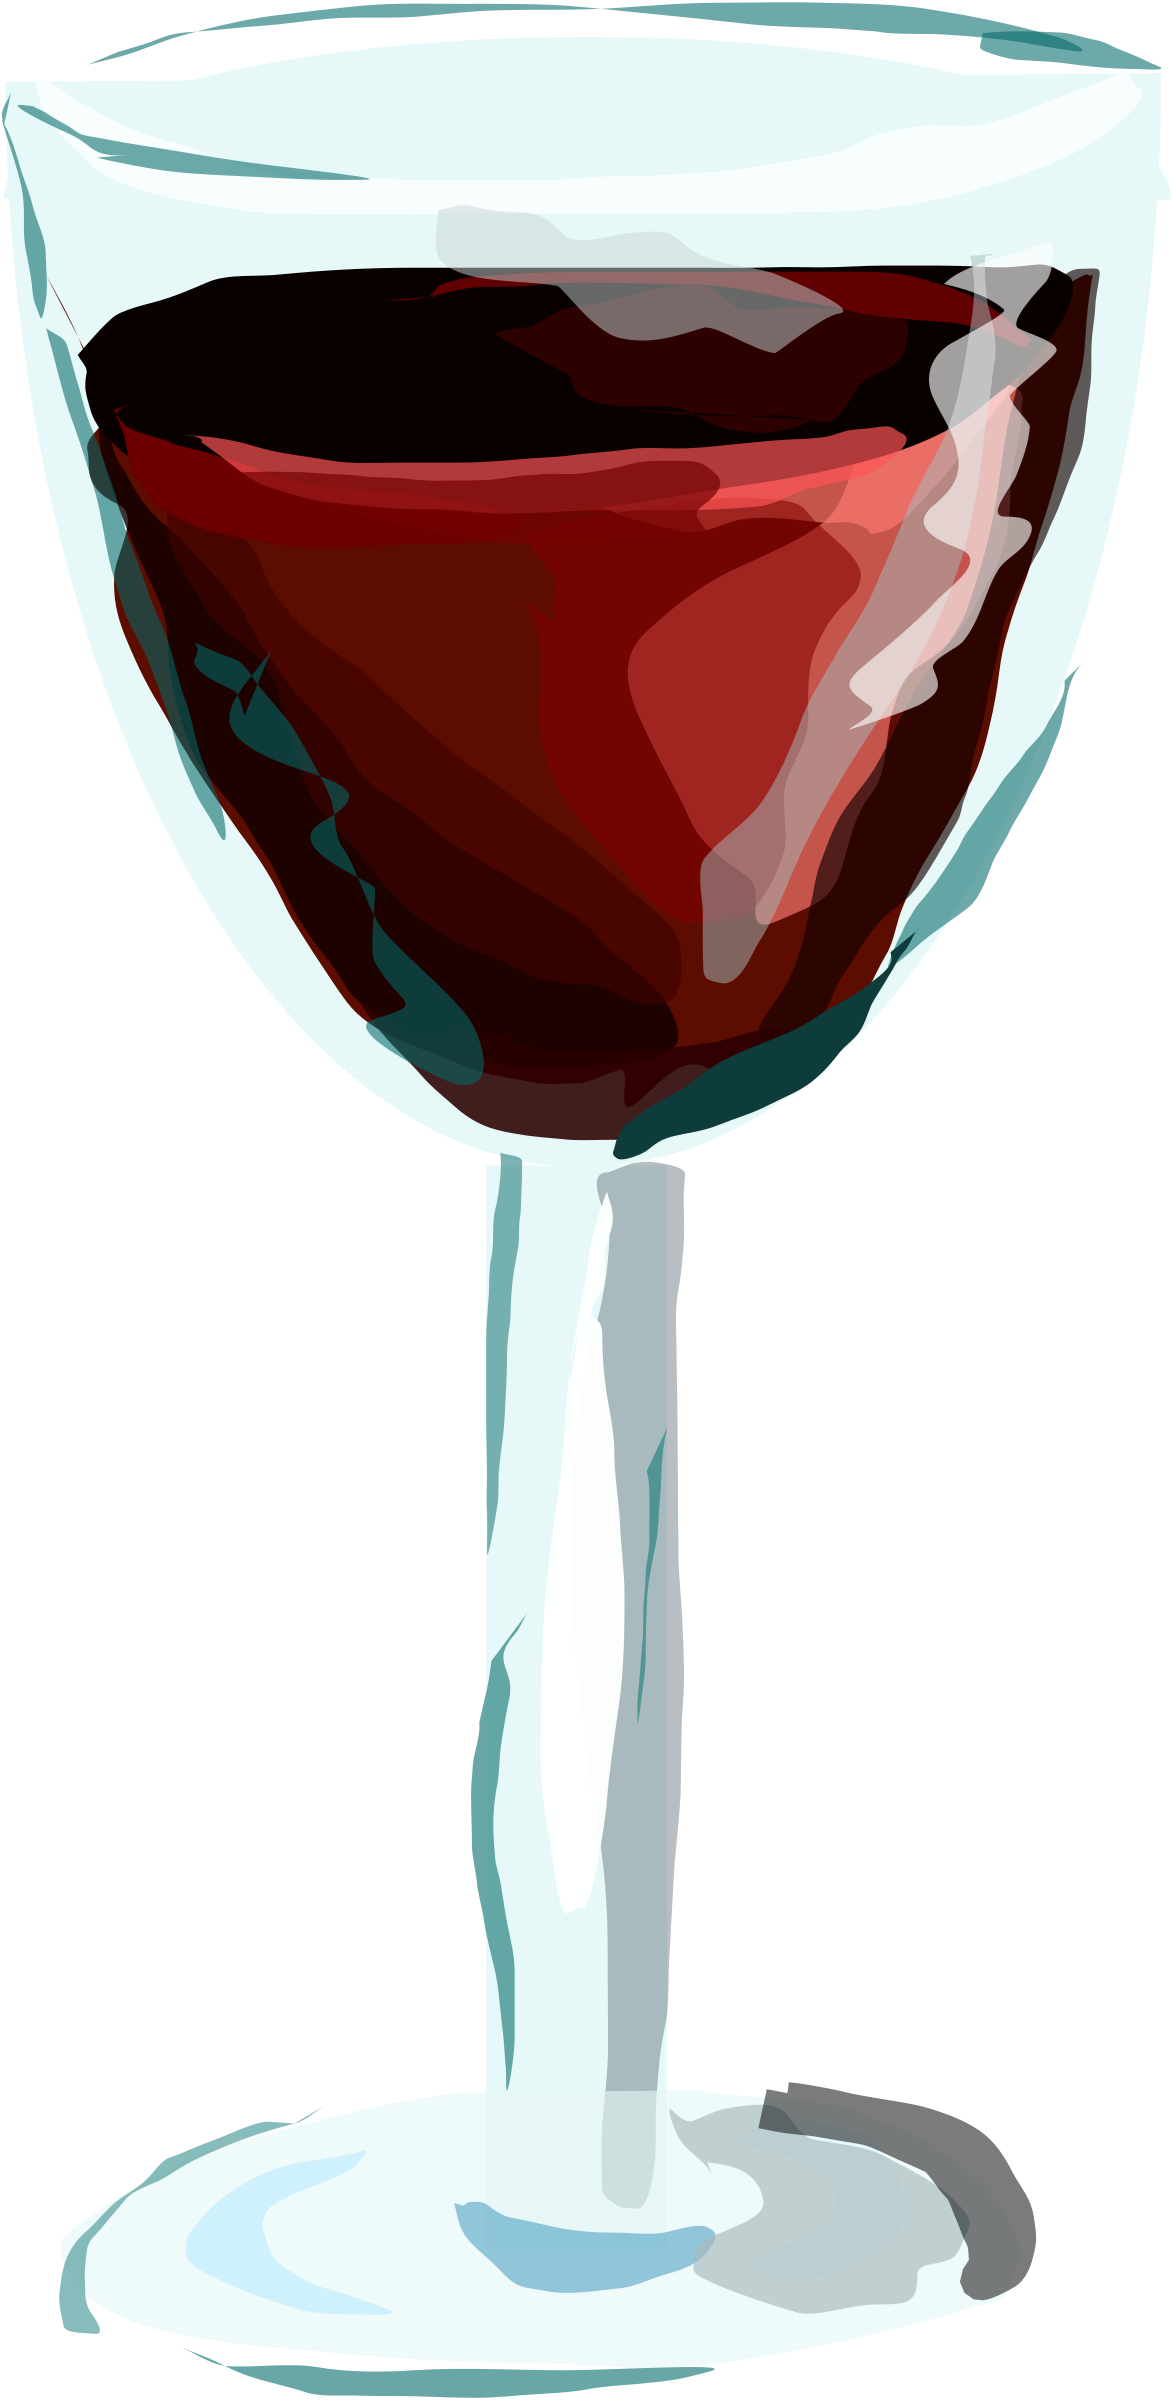 Red Wine Glass By Degri